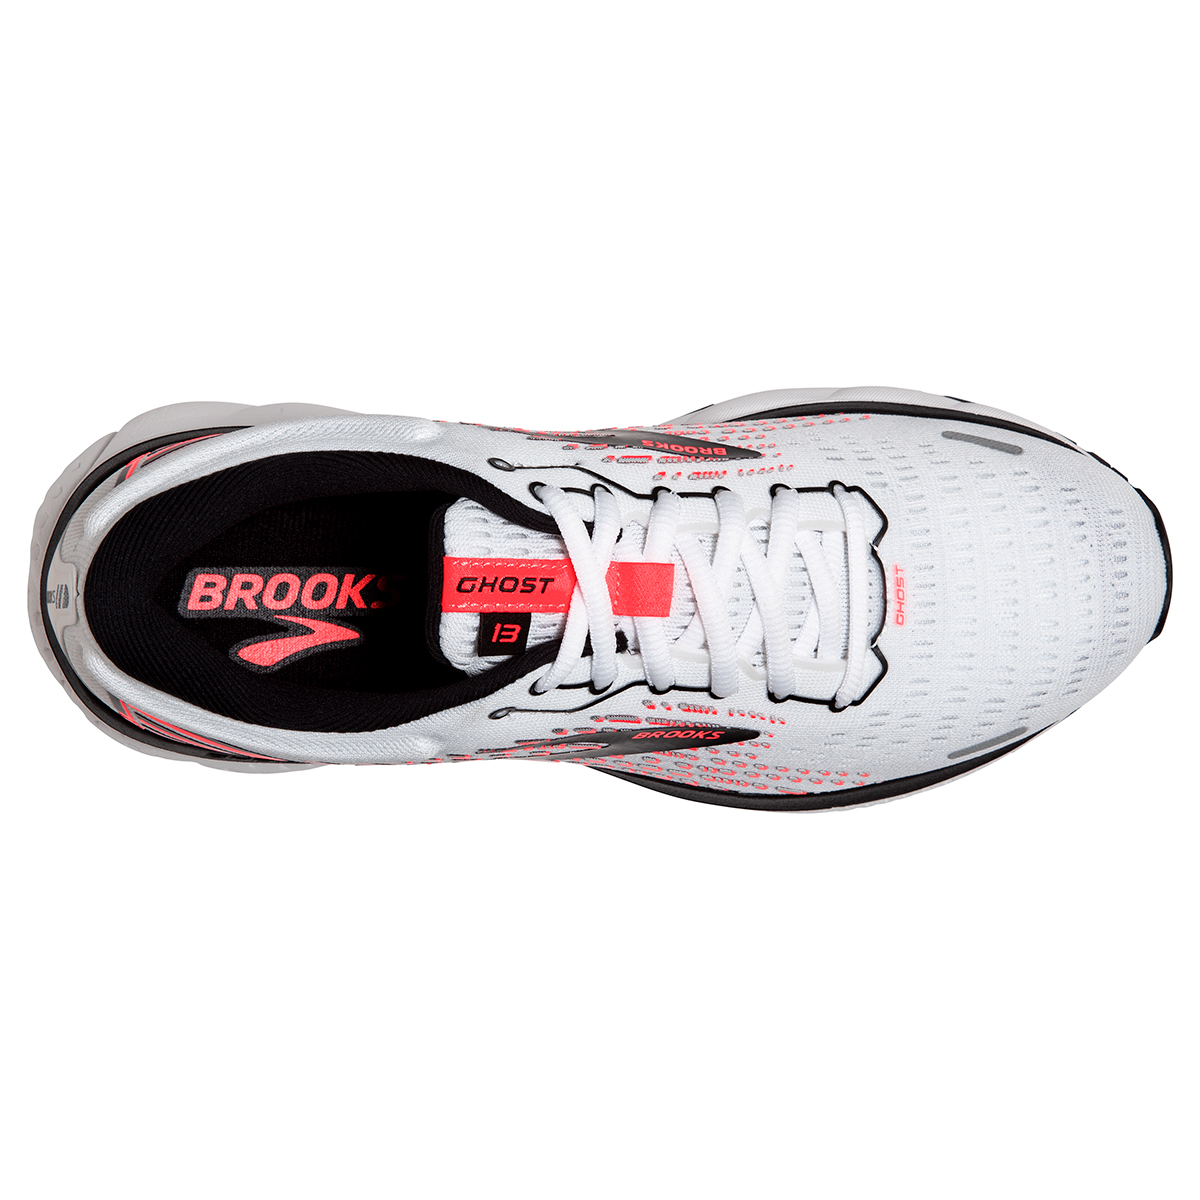 Women's Brooks Ghost 13 Running Shoe - Color: White/Pink/Black - Size: 5 - Width: Regular, White/Pink/Black, large, image 2